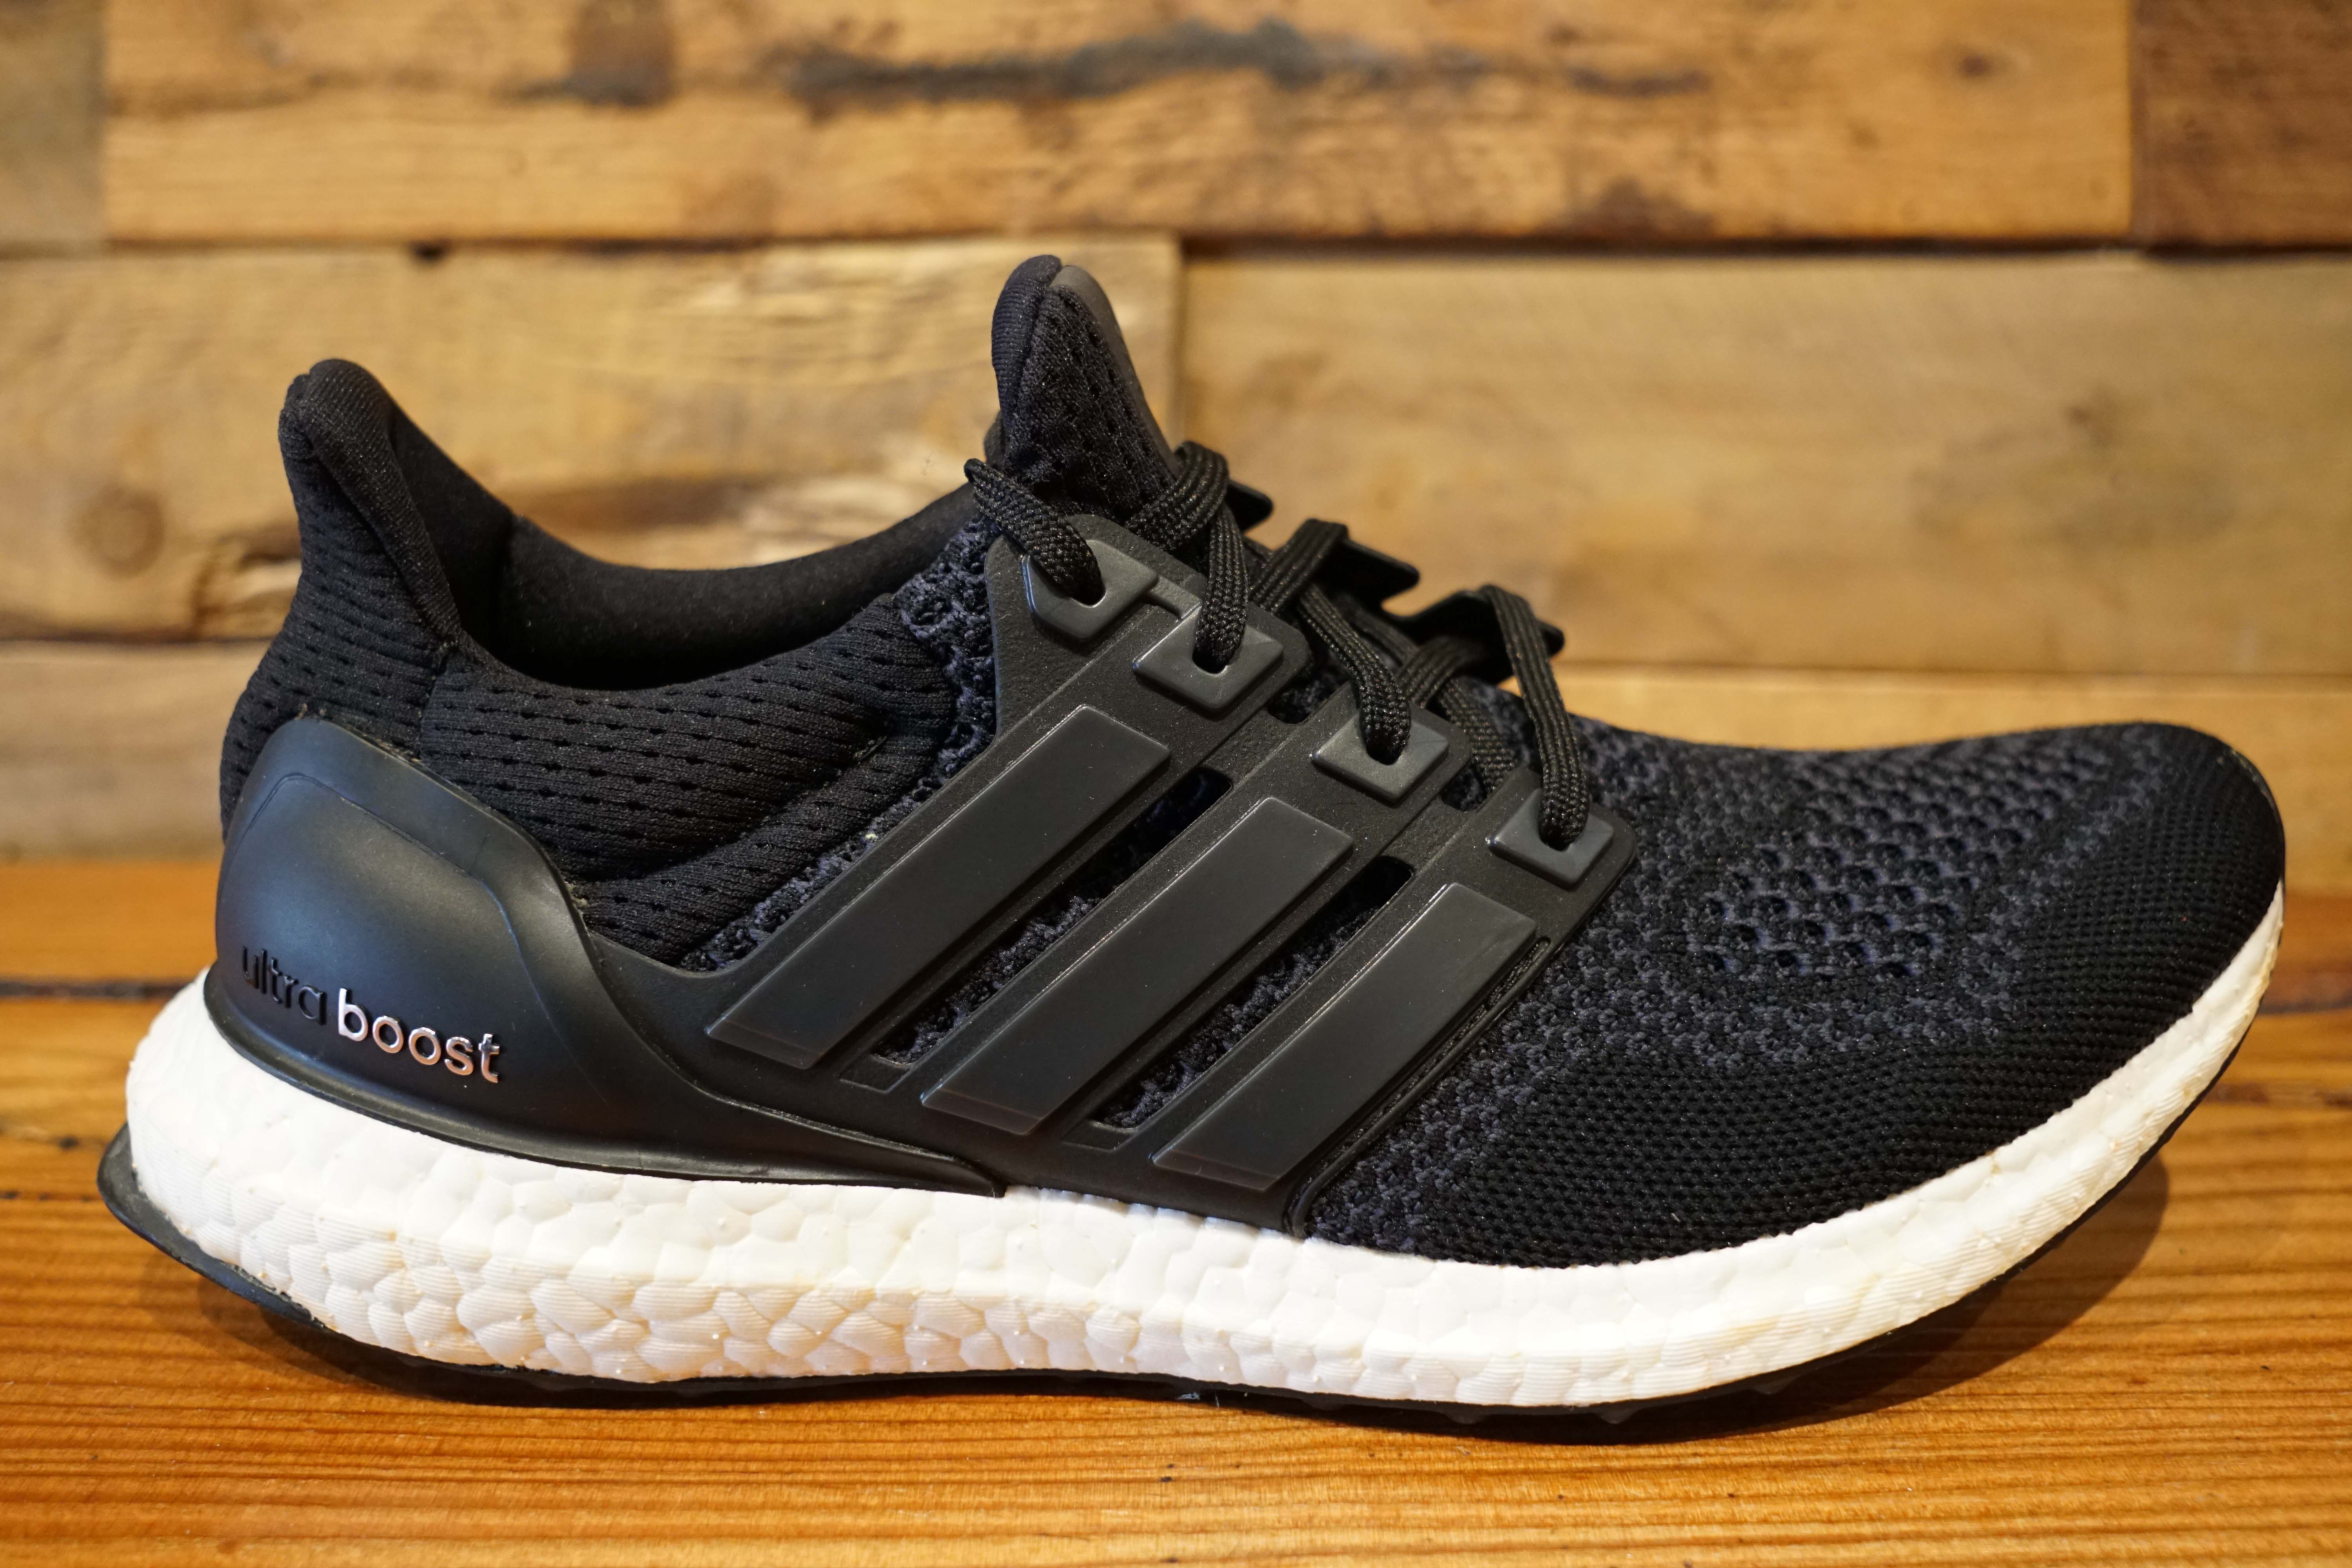 adidas ultraboost 1 0 core black 2015 used replacement box size 8